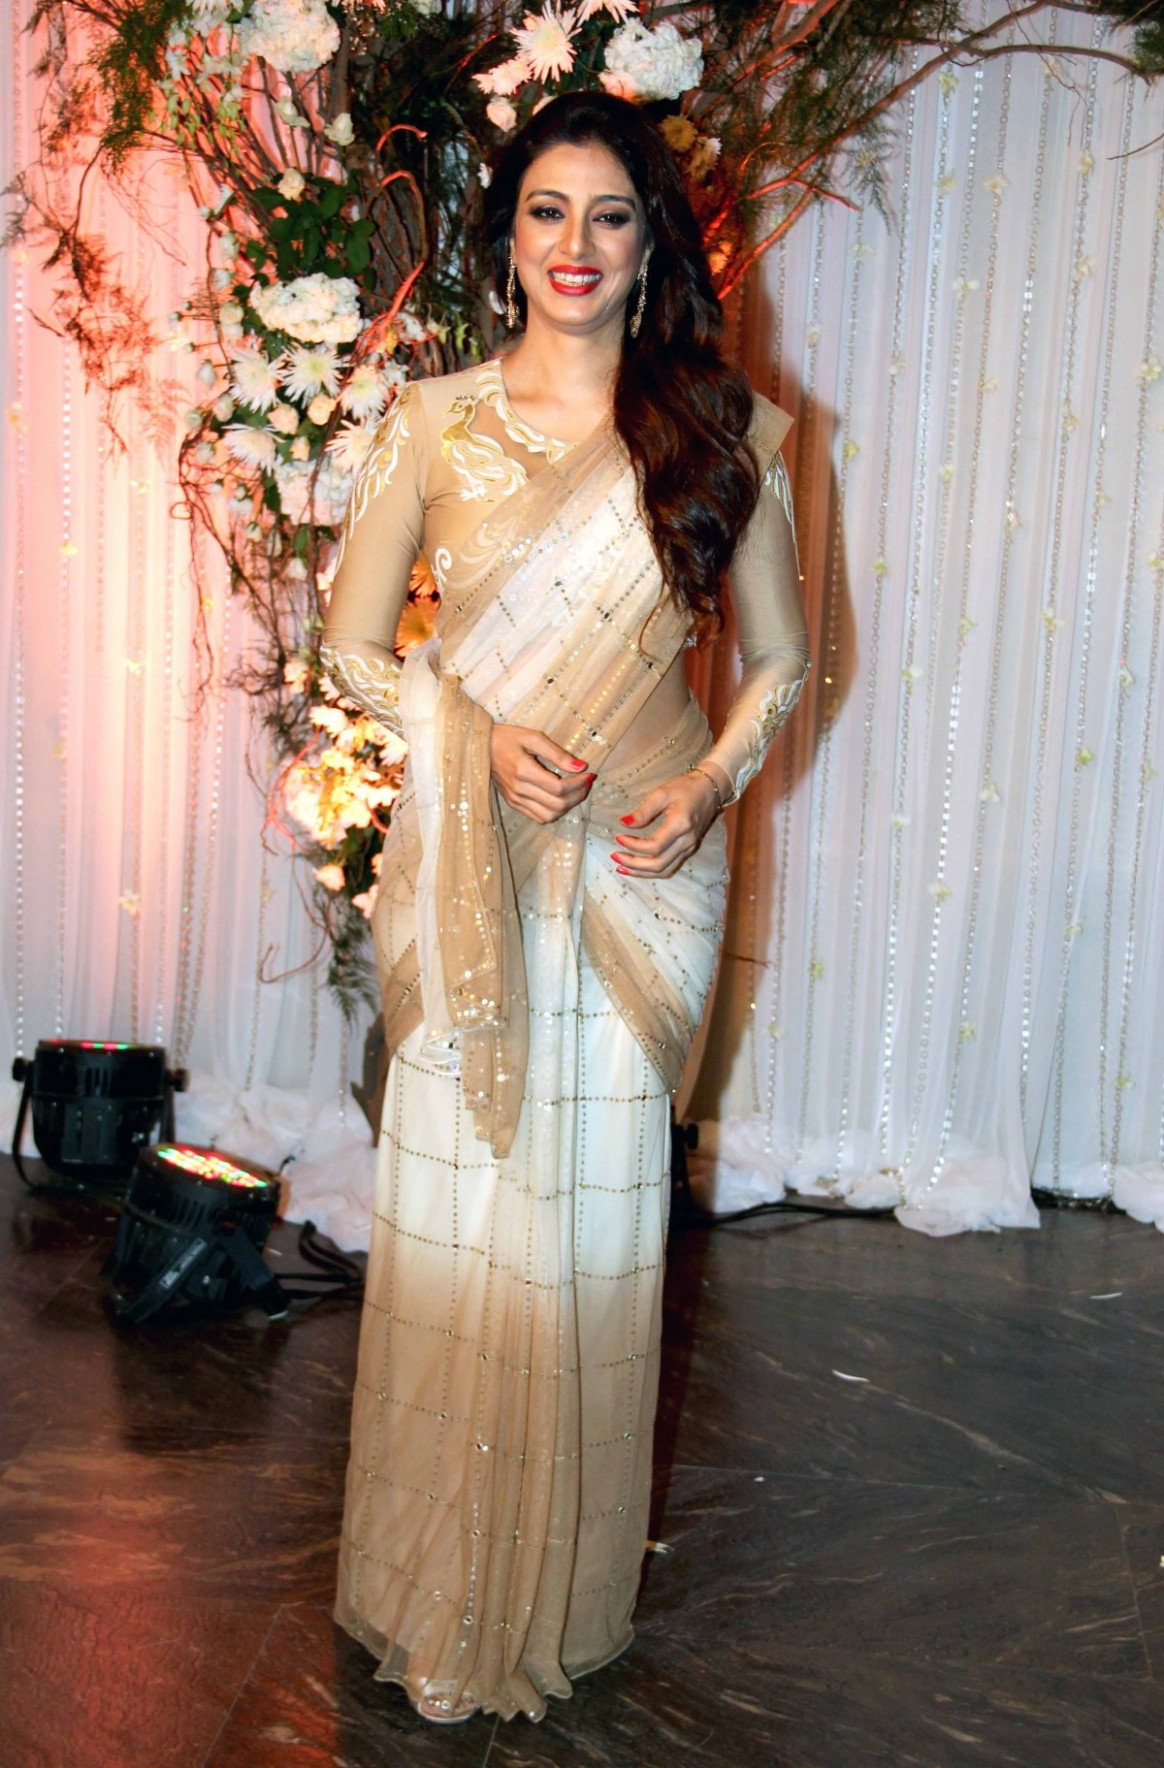 Bipasha-Karan wedding reception: Salman, Aishwarya, Shah ...